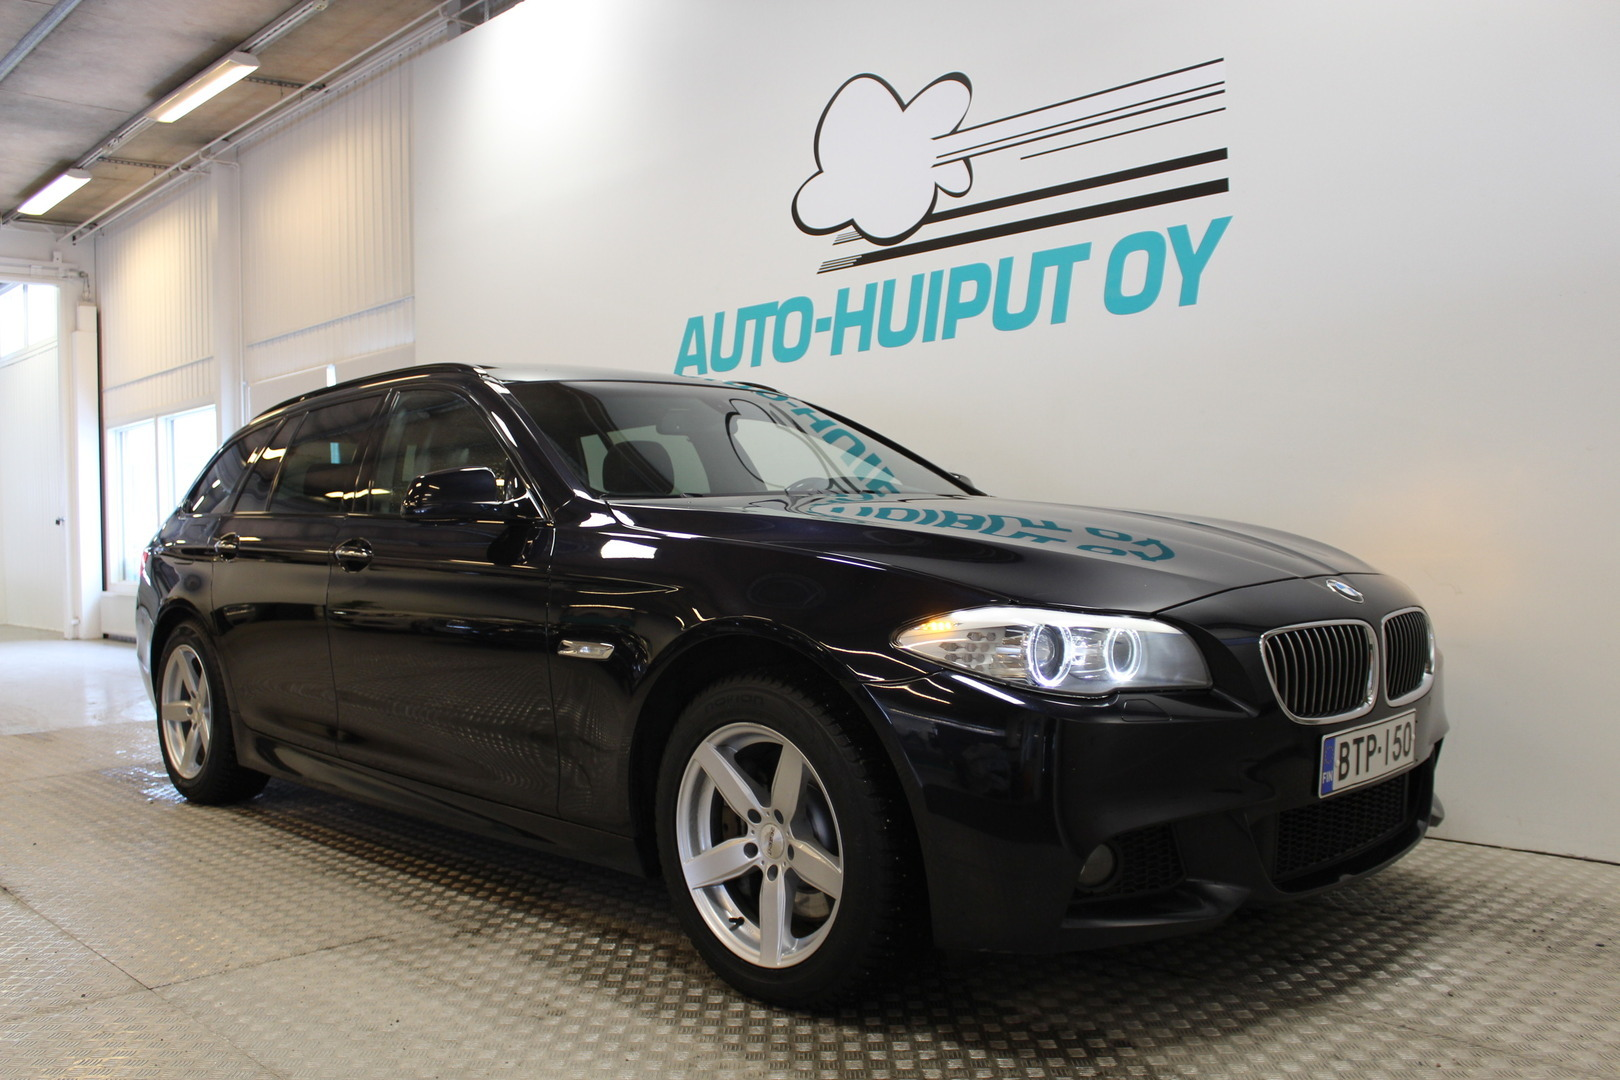 BMW 525D, TwinPower Turbo A xDrive F11 Touring M-Sport #Proffanavi #Panorama